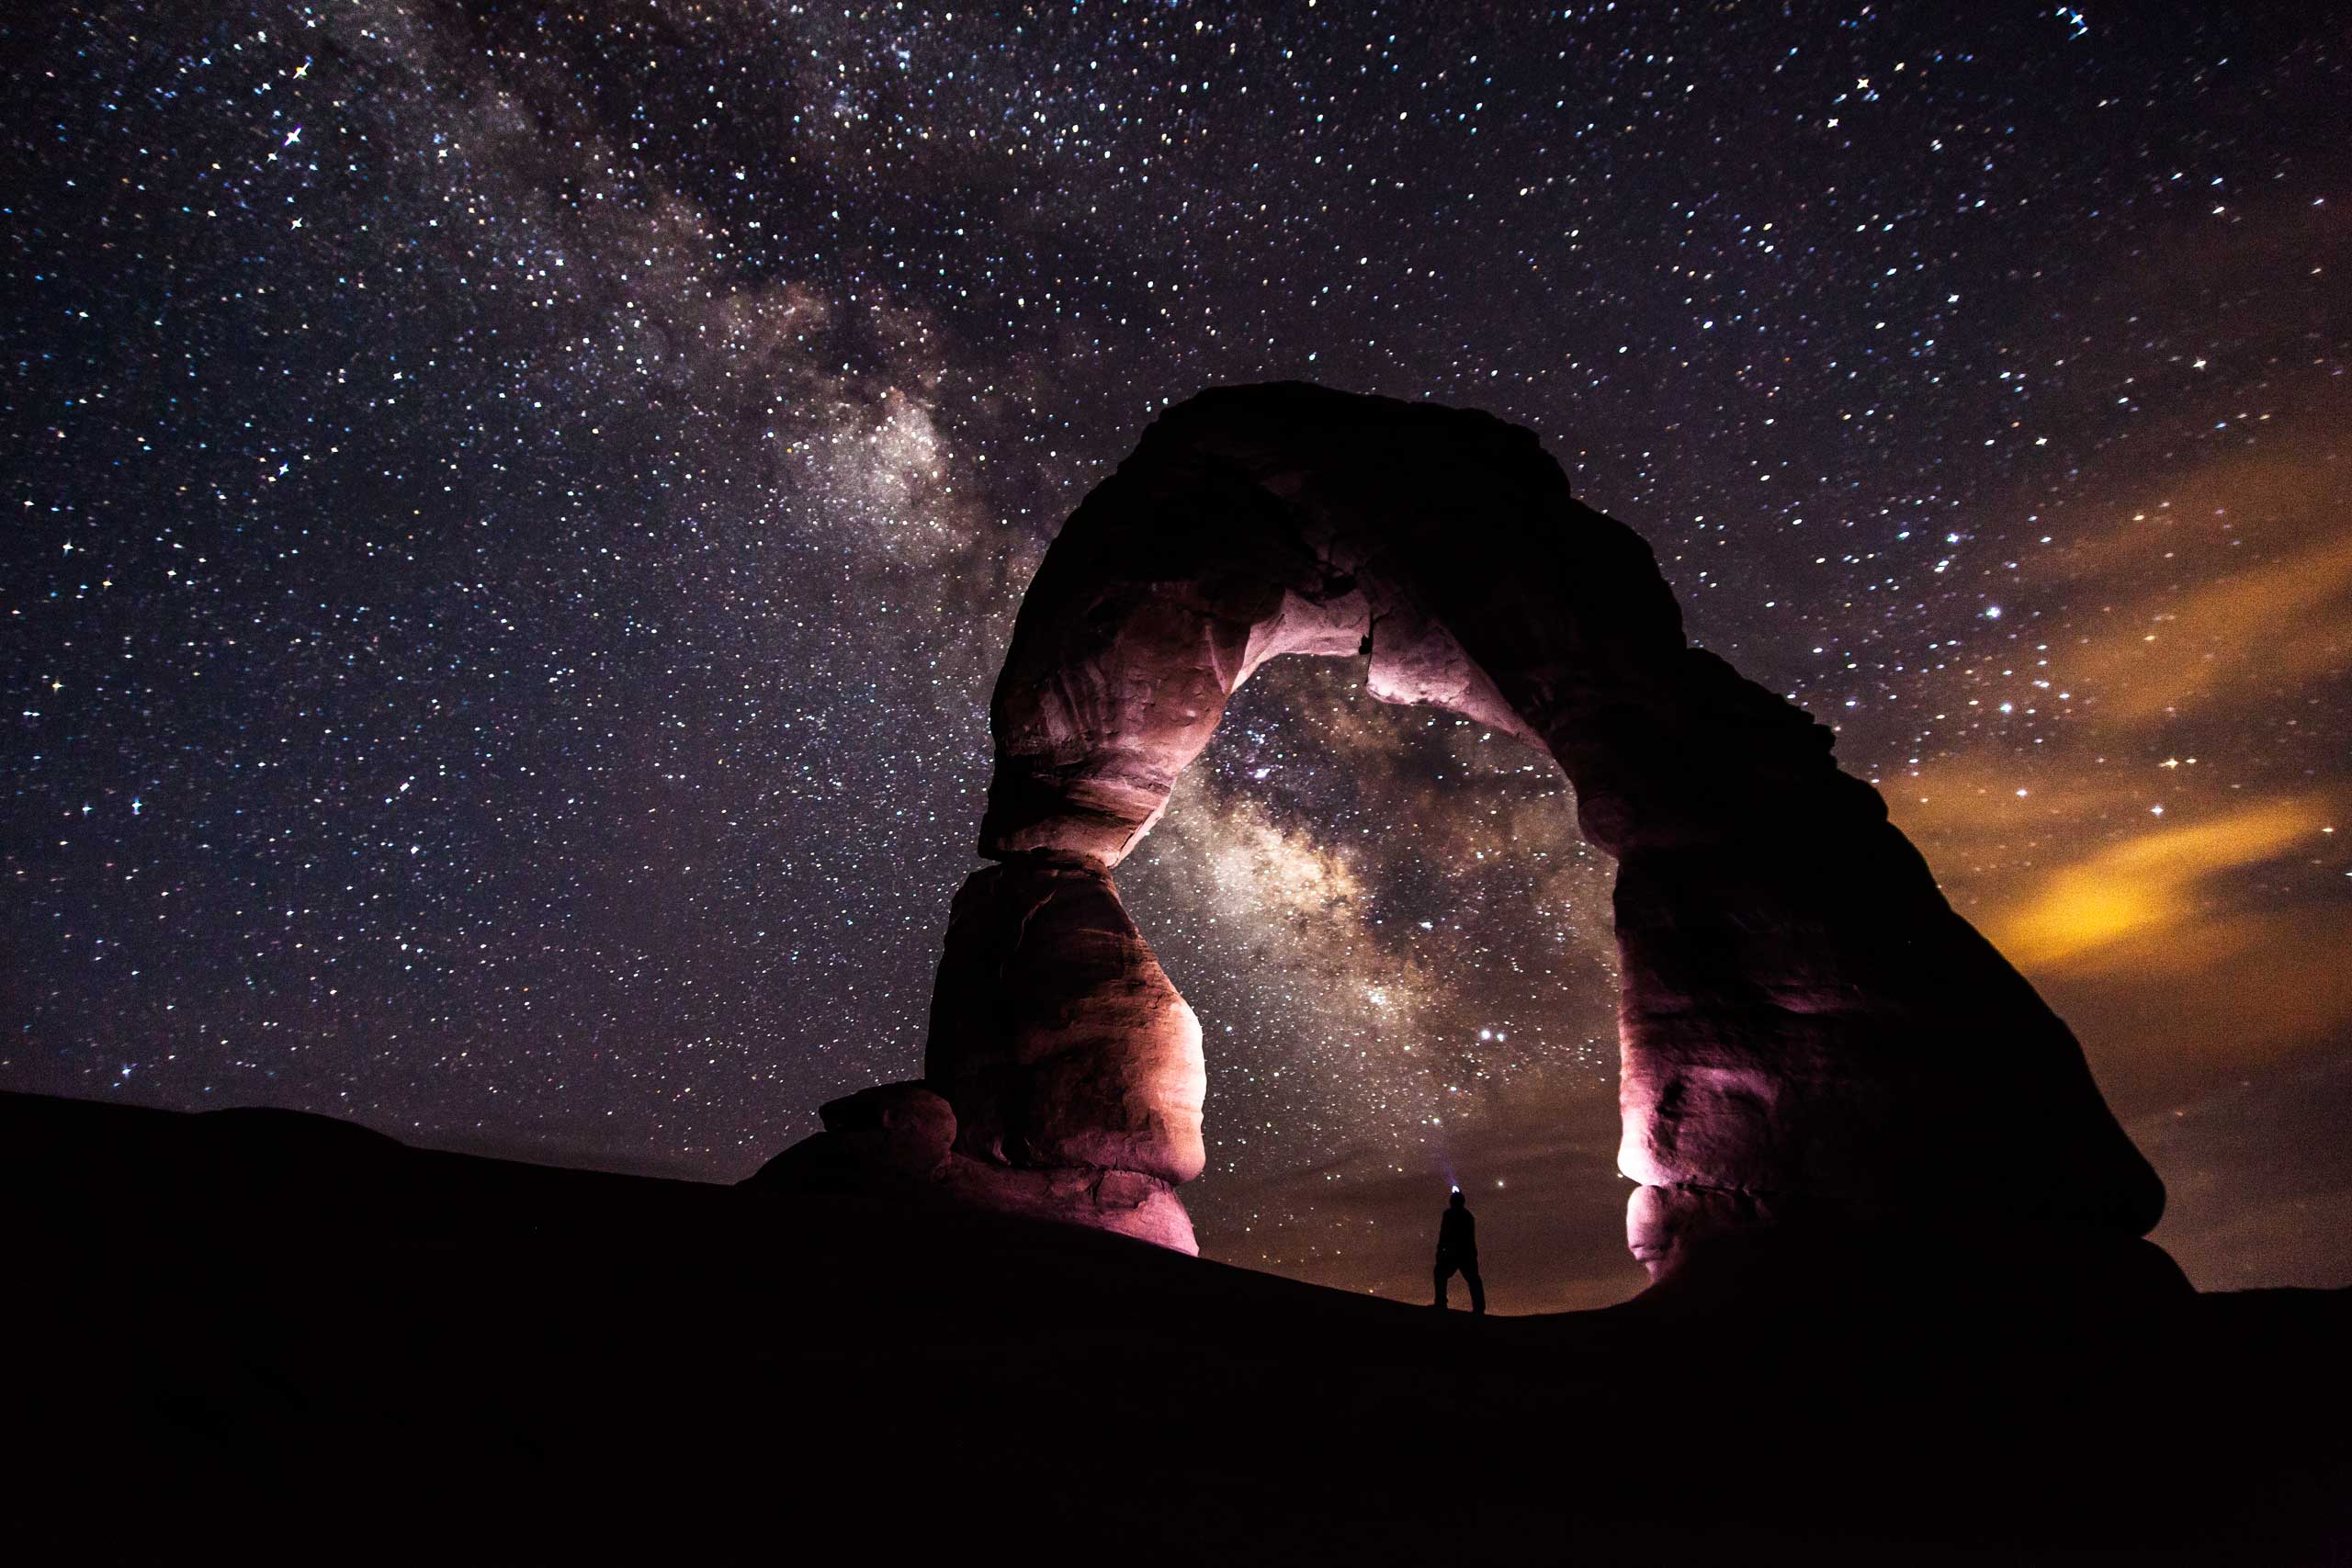 The Milky Way over Arches National Park in Utah.